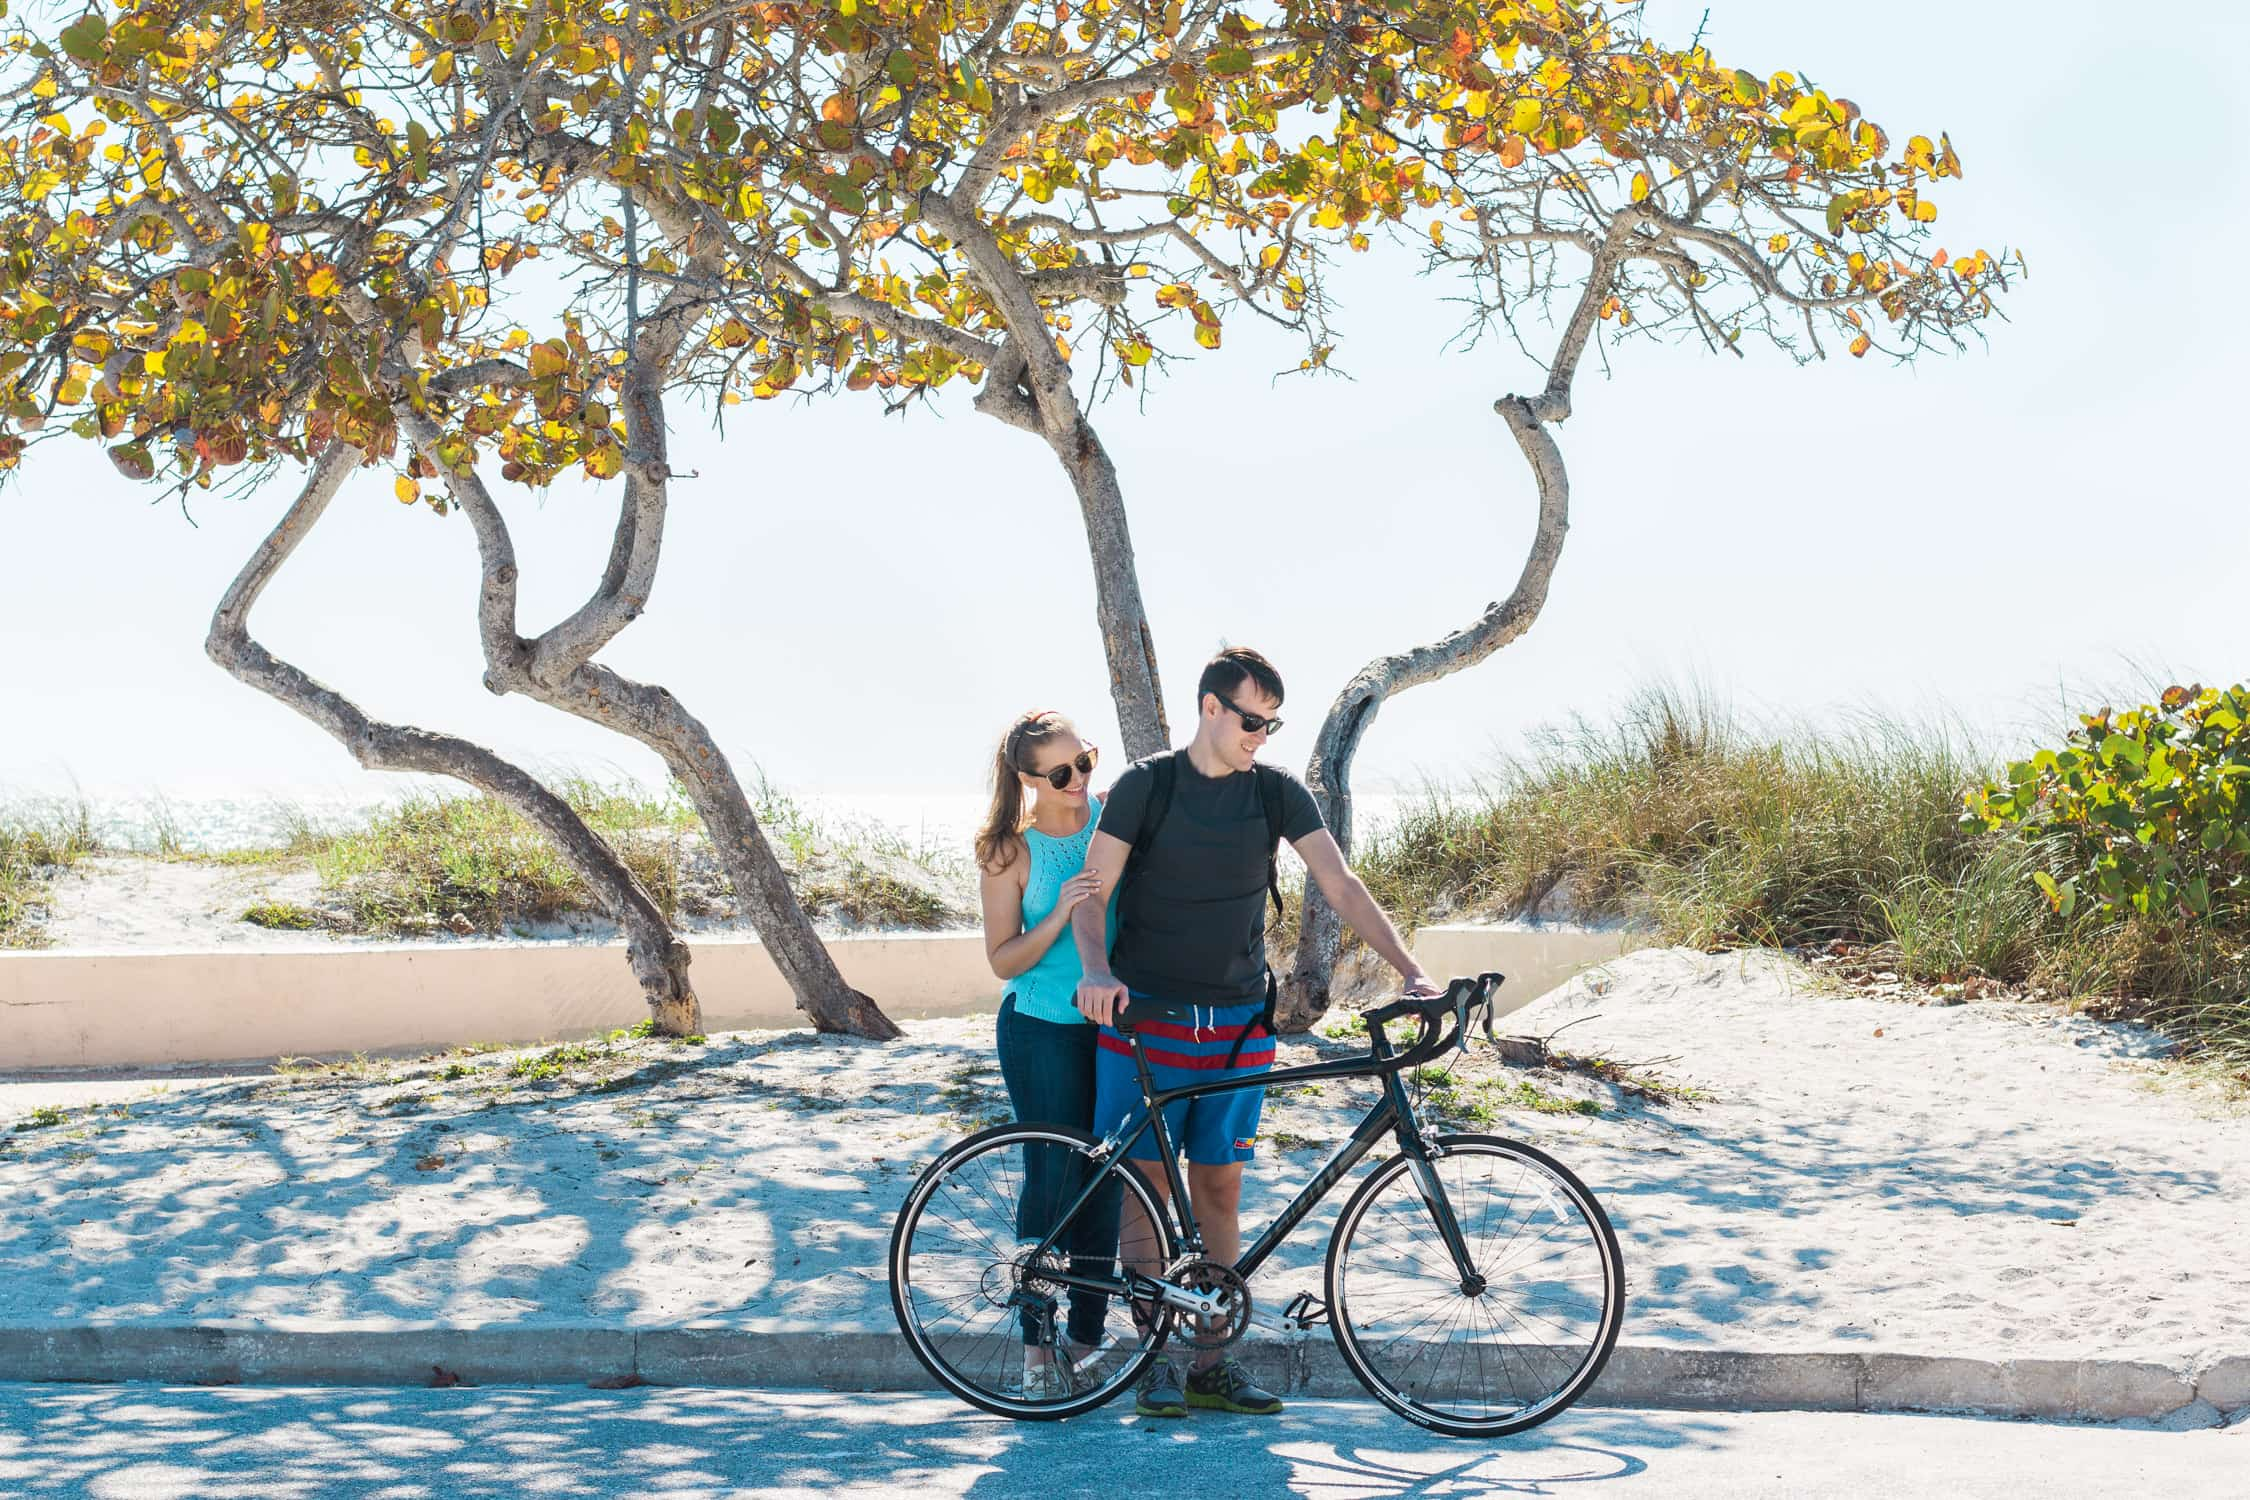 Couples bike ride on Lido Beach | How to plan an adventurous weekend getaway in Longboat Key, Florida including a day of boating! #LoveFL sponsored by @visitflorida | Florida travel tips, beach vacation, vacation ideas, vacation goals, travel blogger Ashley Brooke Nicholas, Florida travel guide, Longboat Key travel guide, Sarasota travel guide, beautiful beaches, boating, affordable travel, US travel, summer vacation, spring break ideas